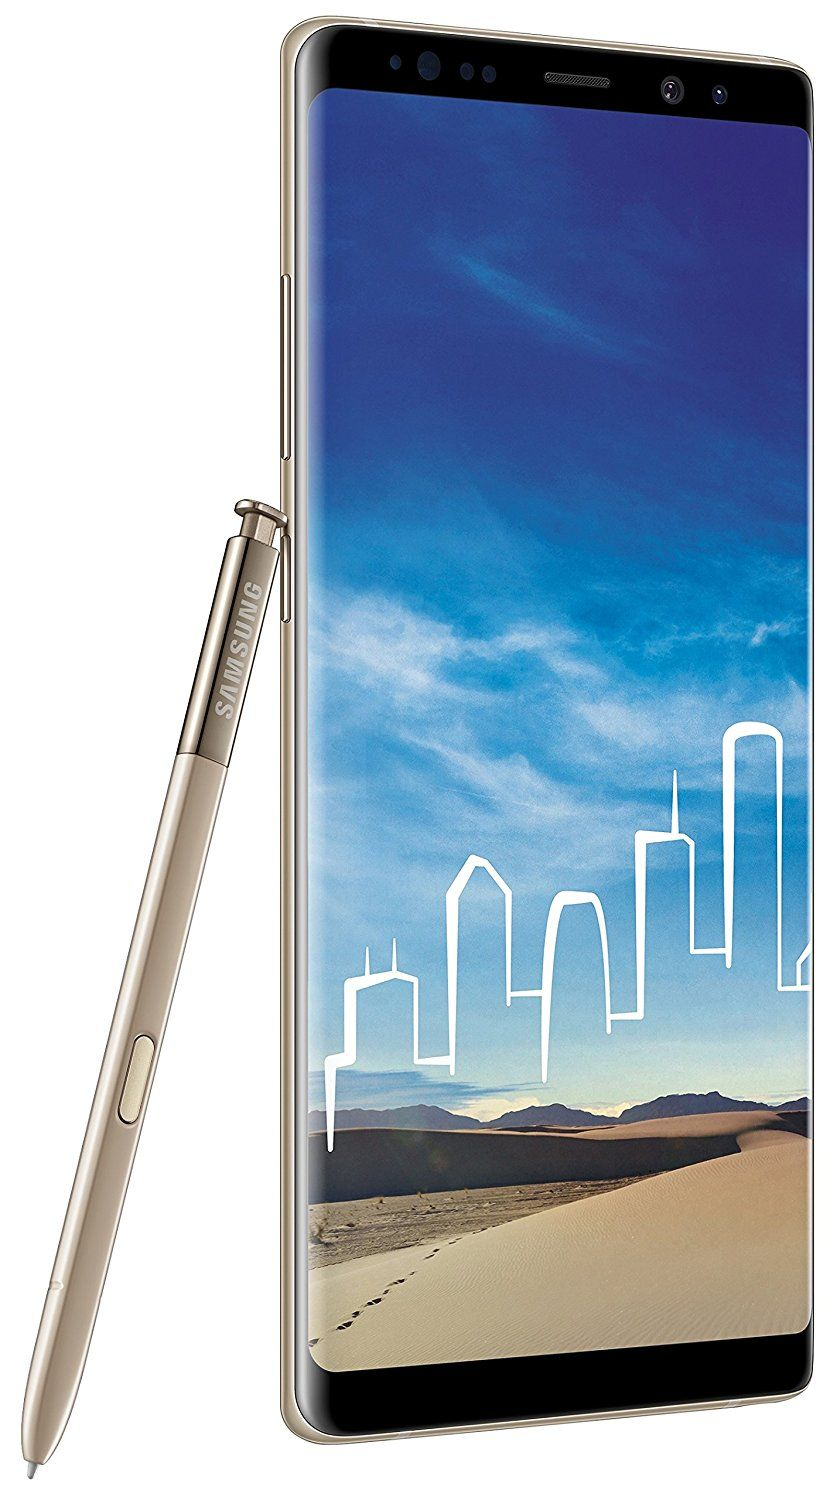 Samsung Galaxy Note 8 All Of Its Exclusive Features You Must Know Samsung Galaxy Note 8